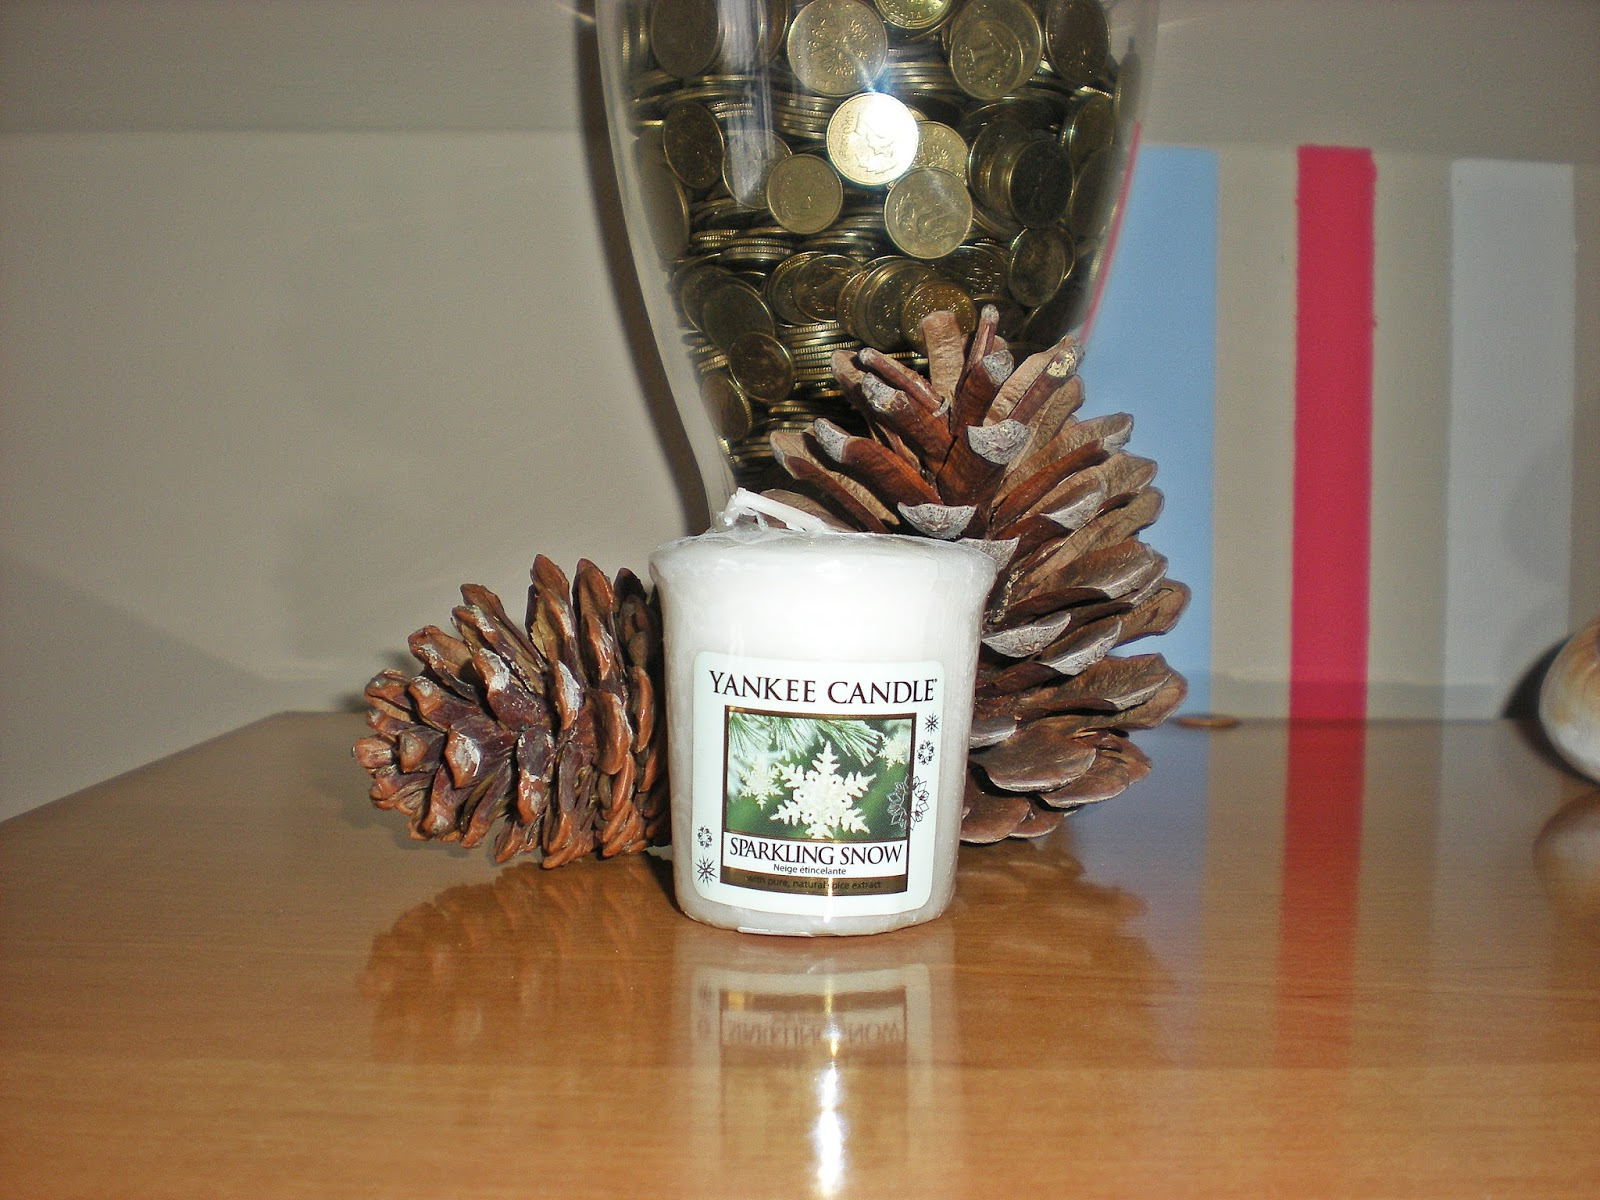 Sparkling Snow_Yankee Candle_Goodies.pl